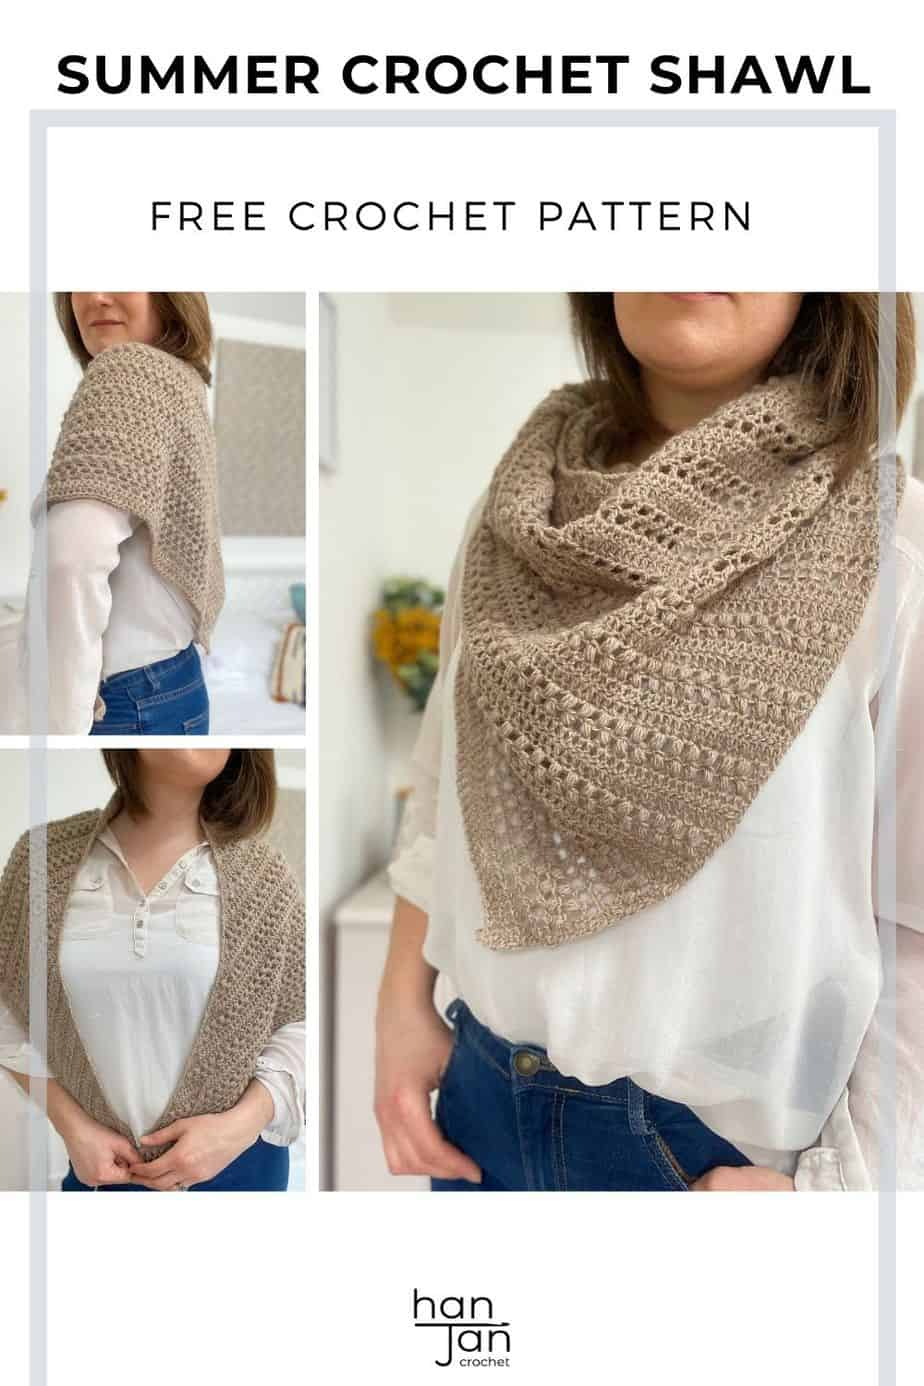 three images of woman wearing a beige boomerang crochet shawl with puff stitch detail.